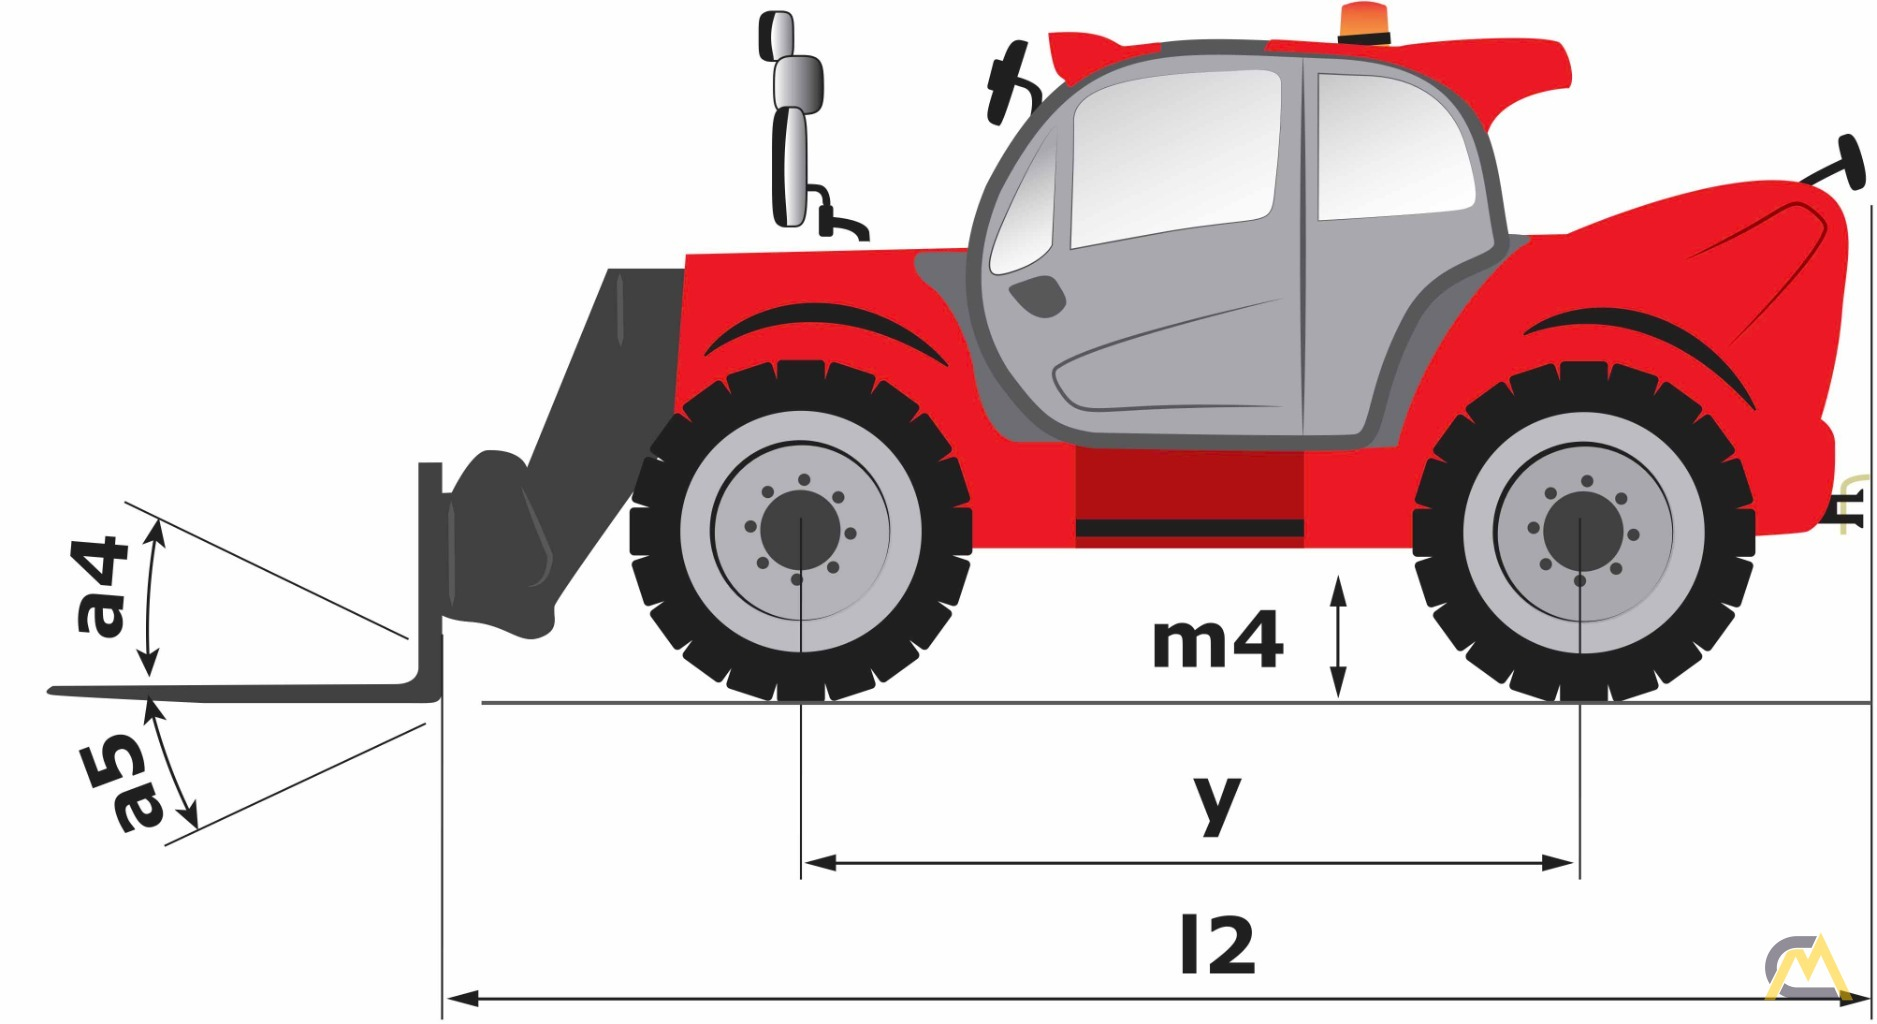 Manitou Mht 10180 High Capacity Telehandler For Sale Or